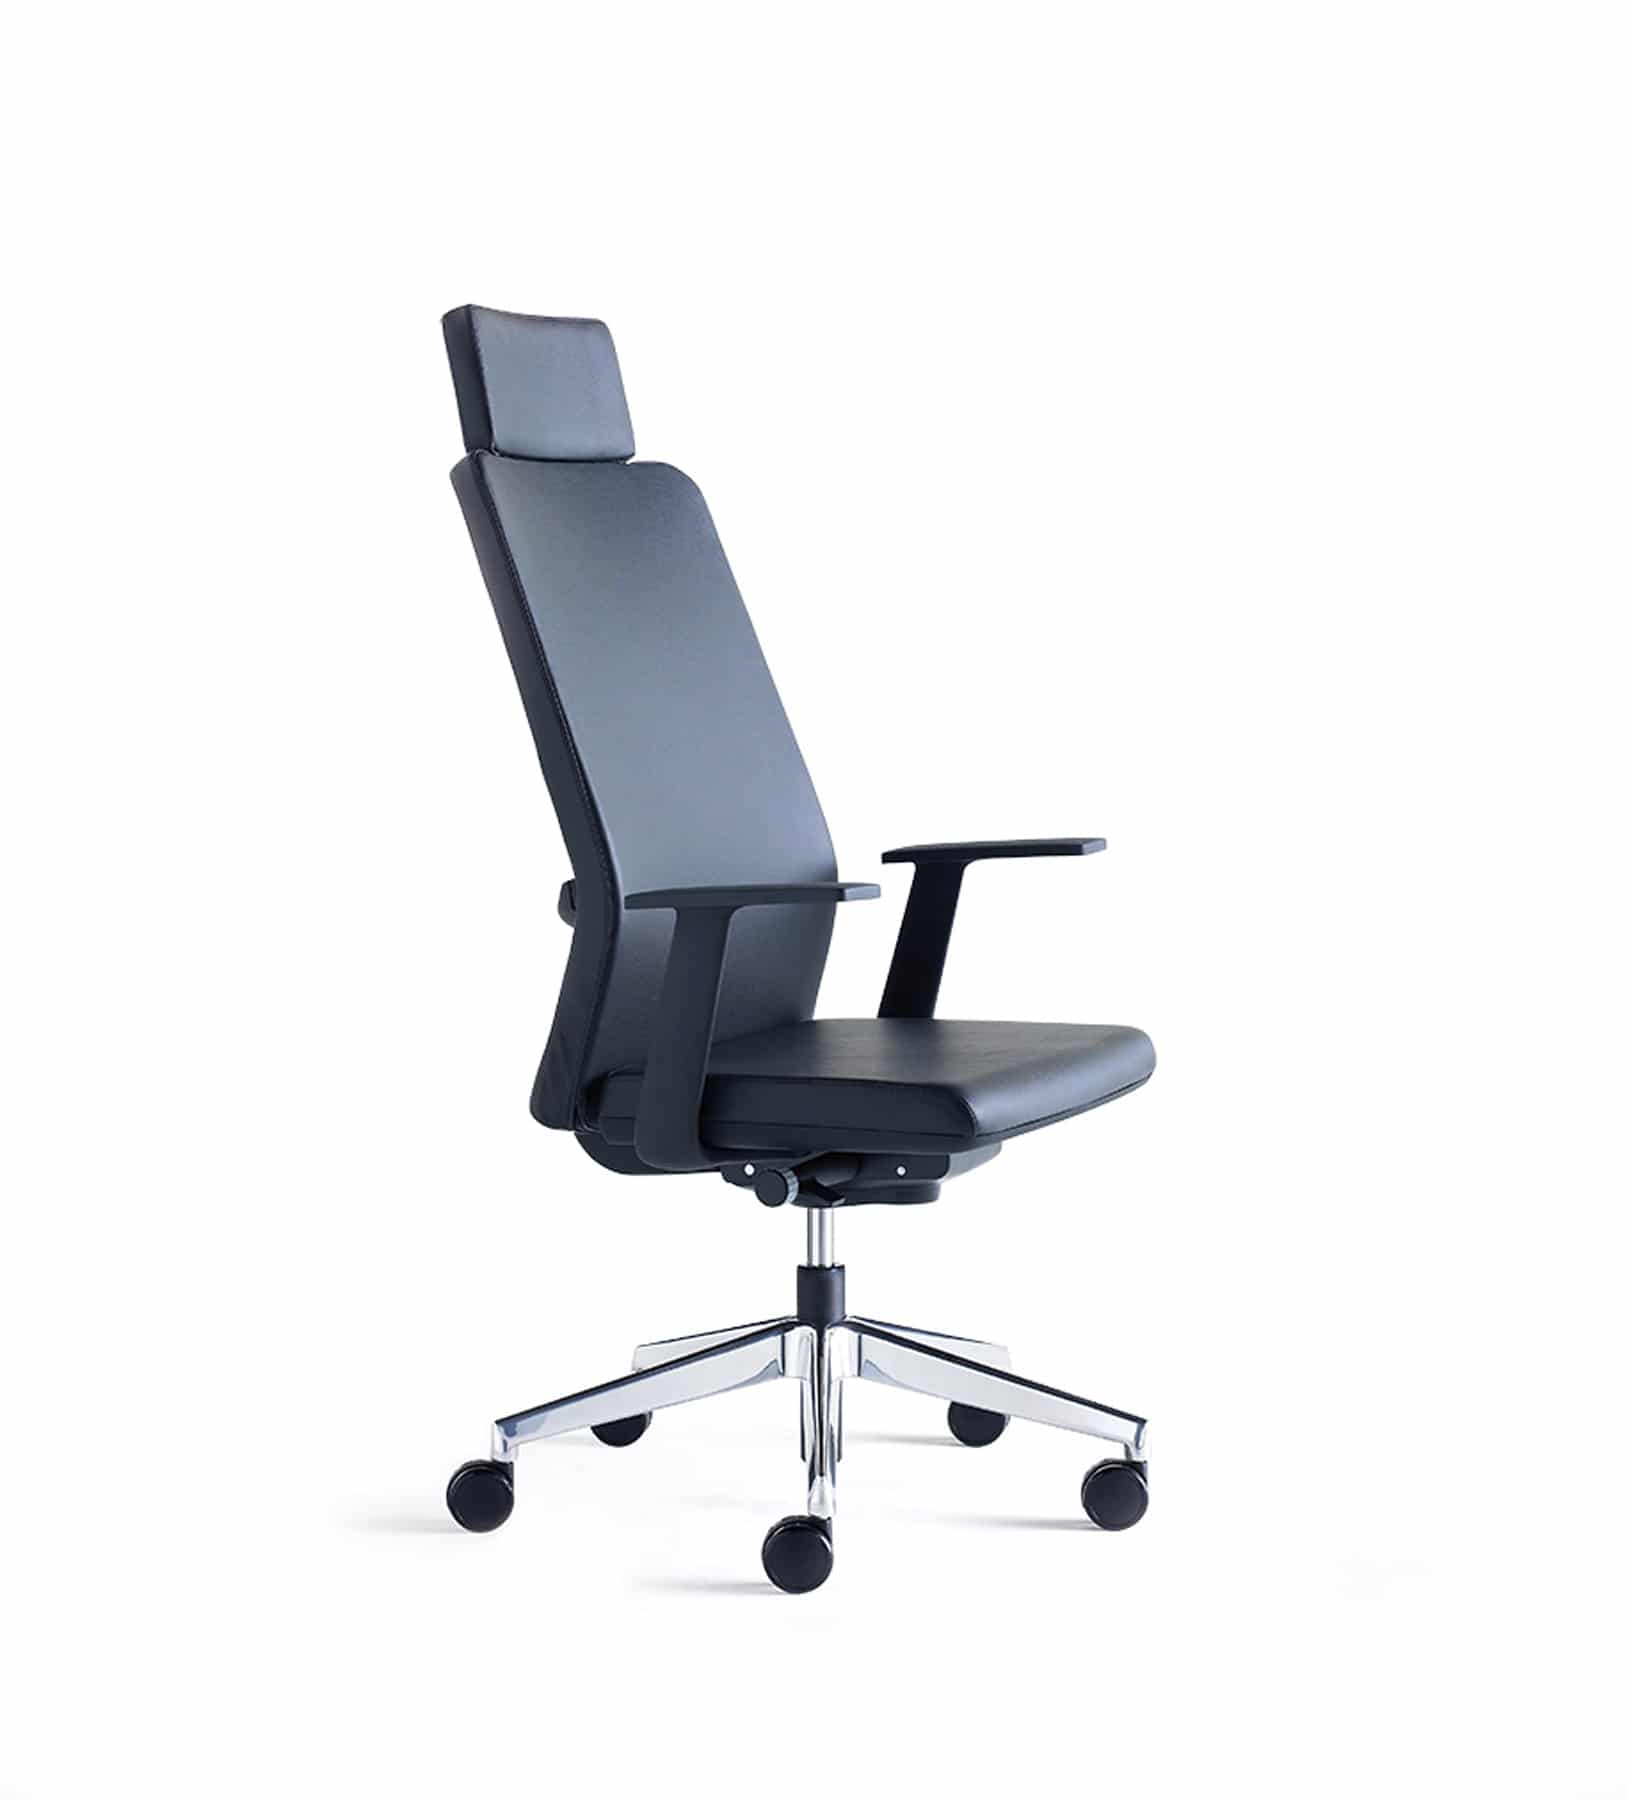 Movado office chair